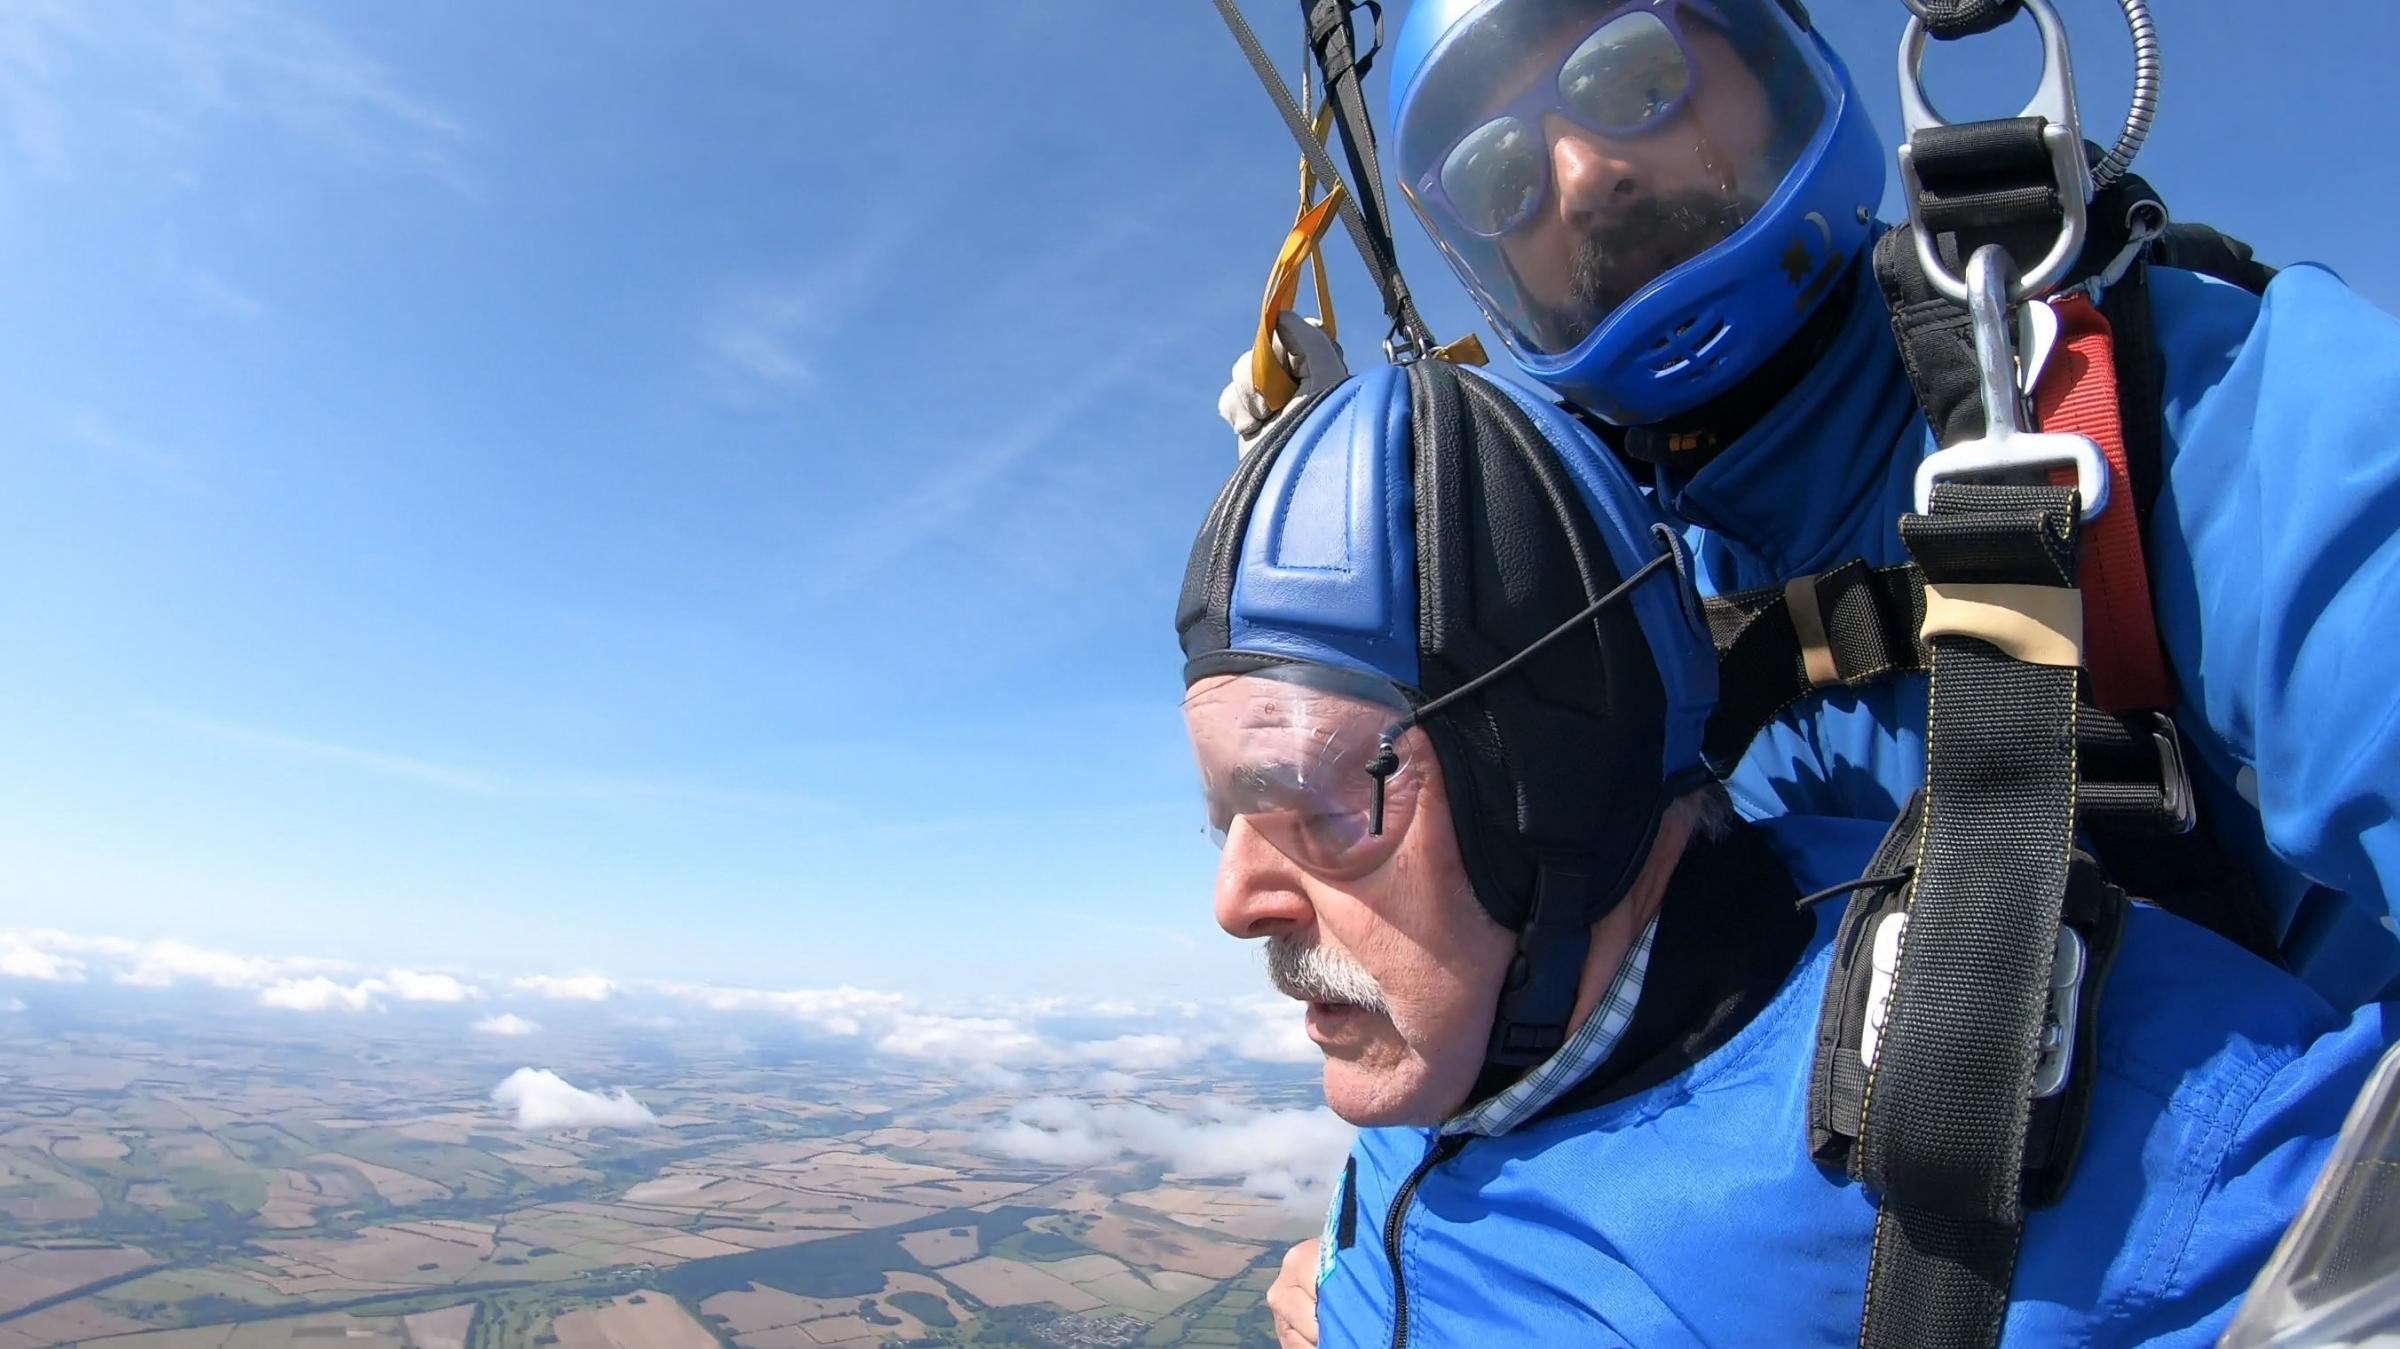 Royal Wootton Bassett OAP conquers fears to help air ambulance